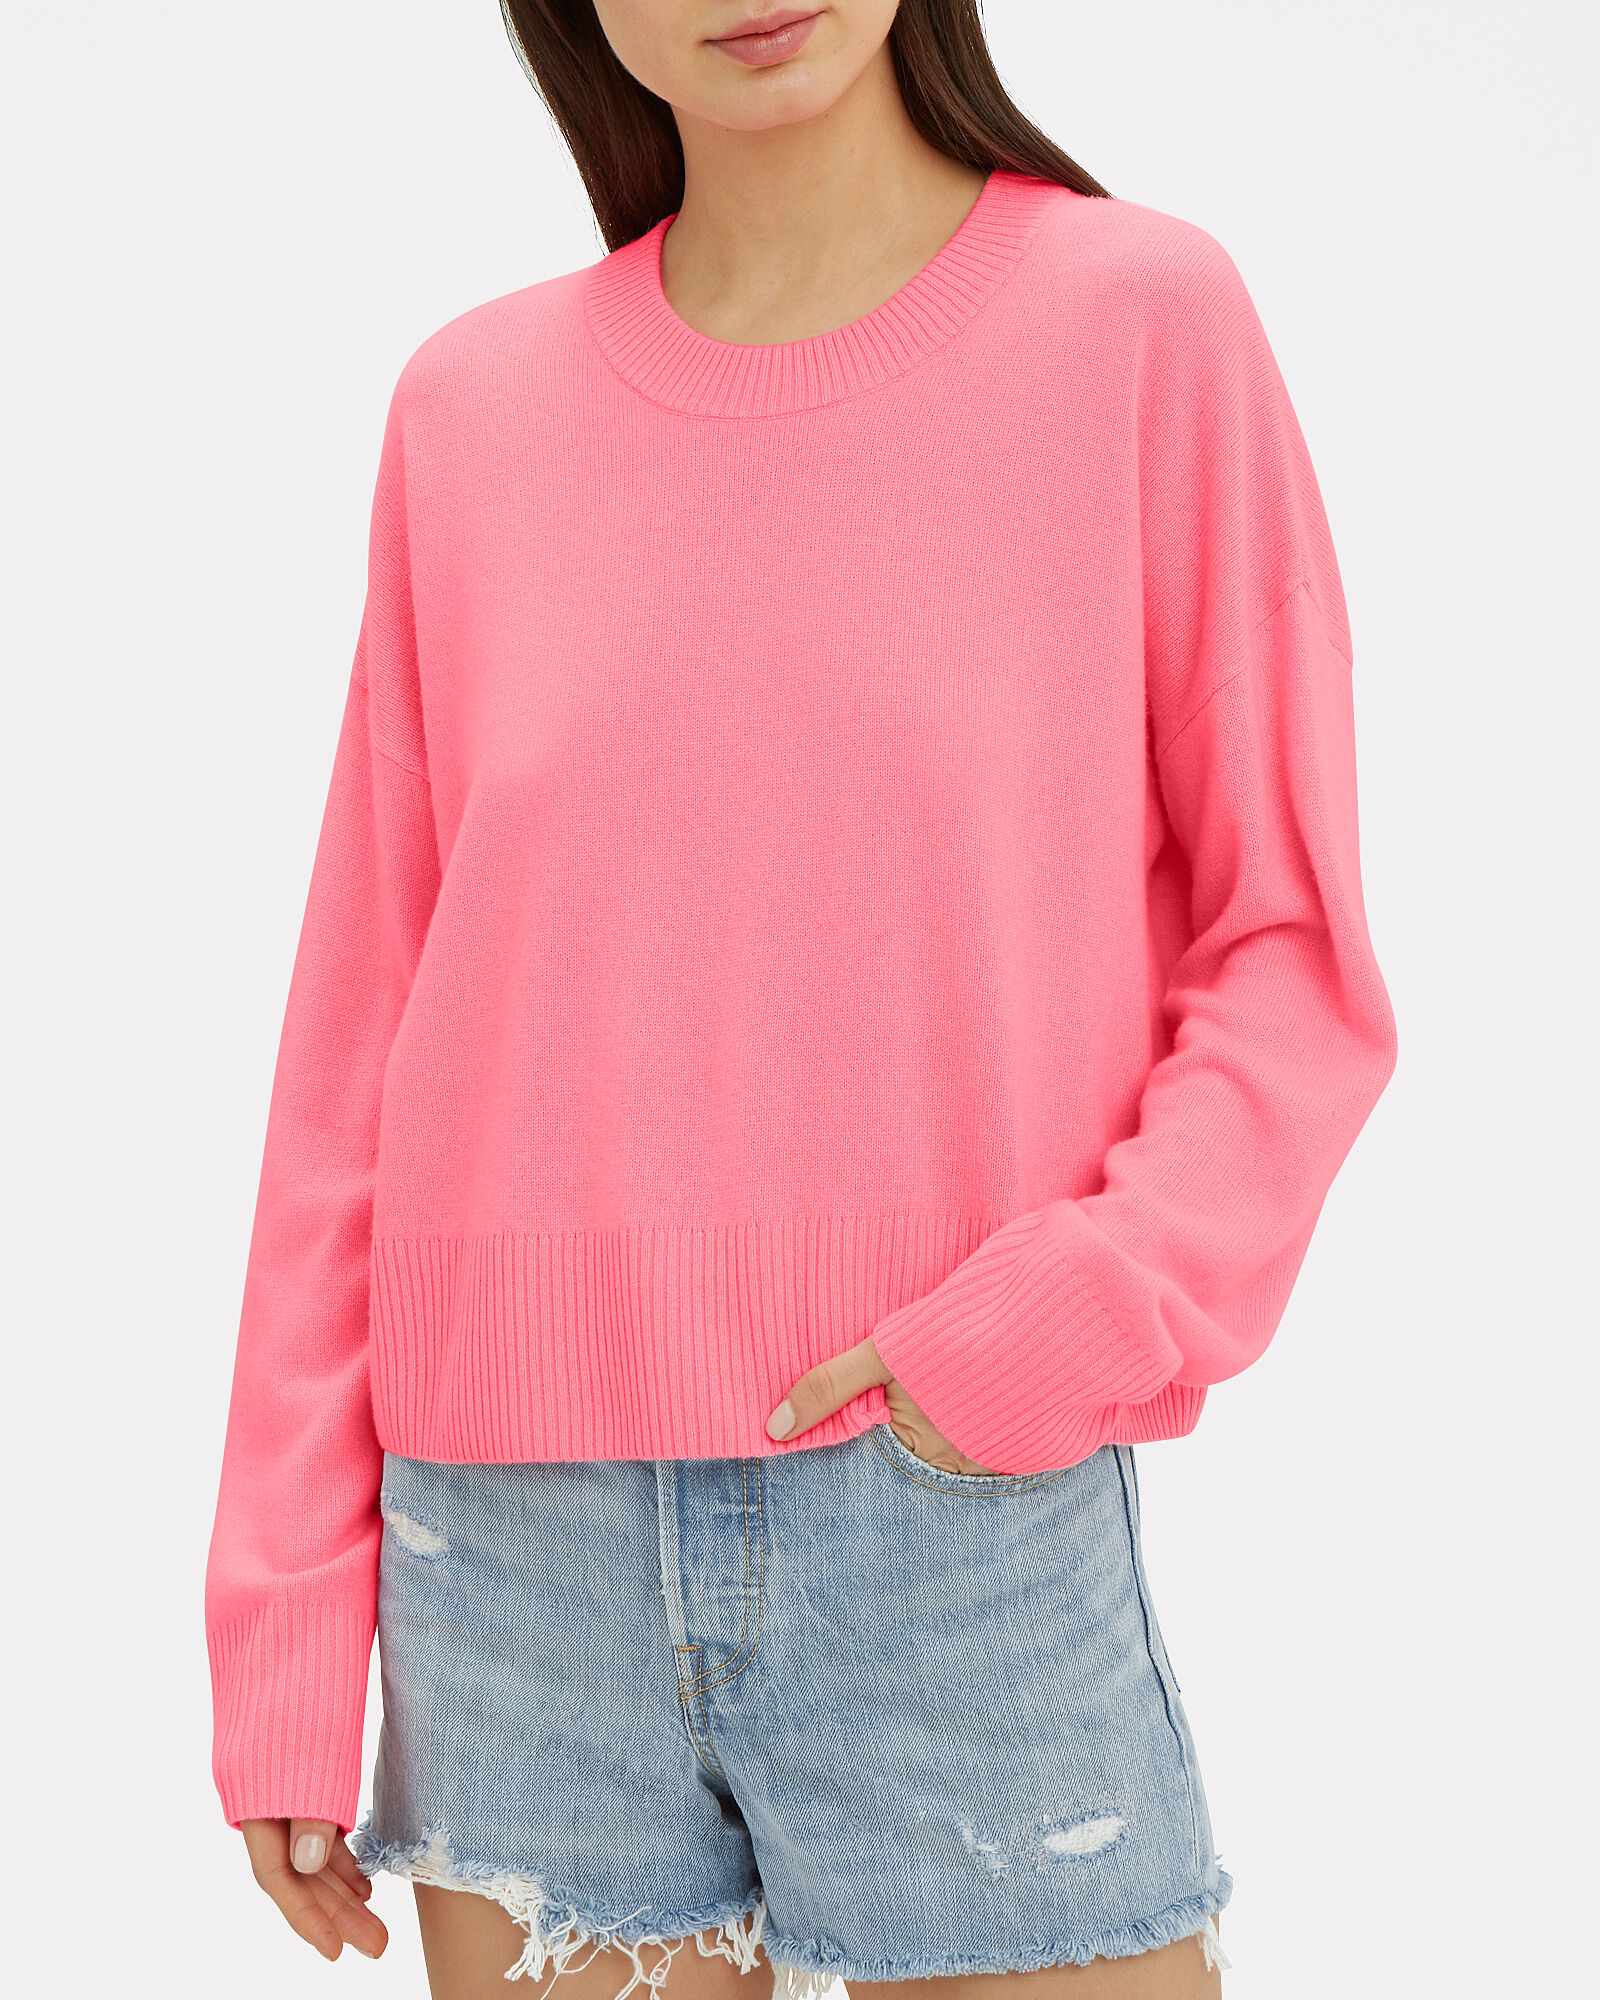 Dilone Wool-Cashmere Sweater, PINK, hi-res